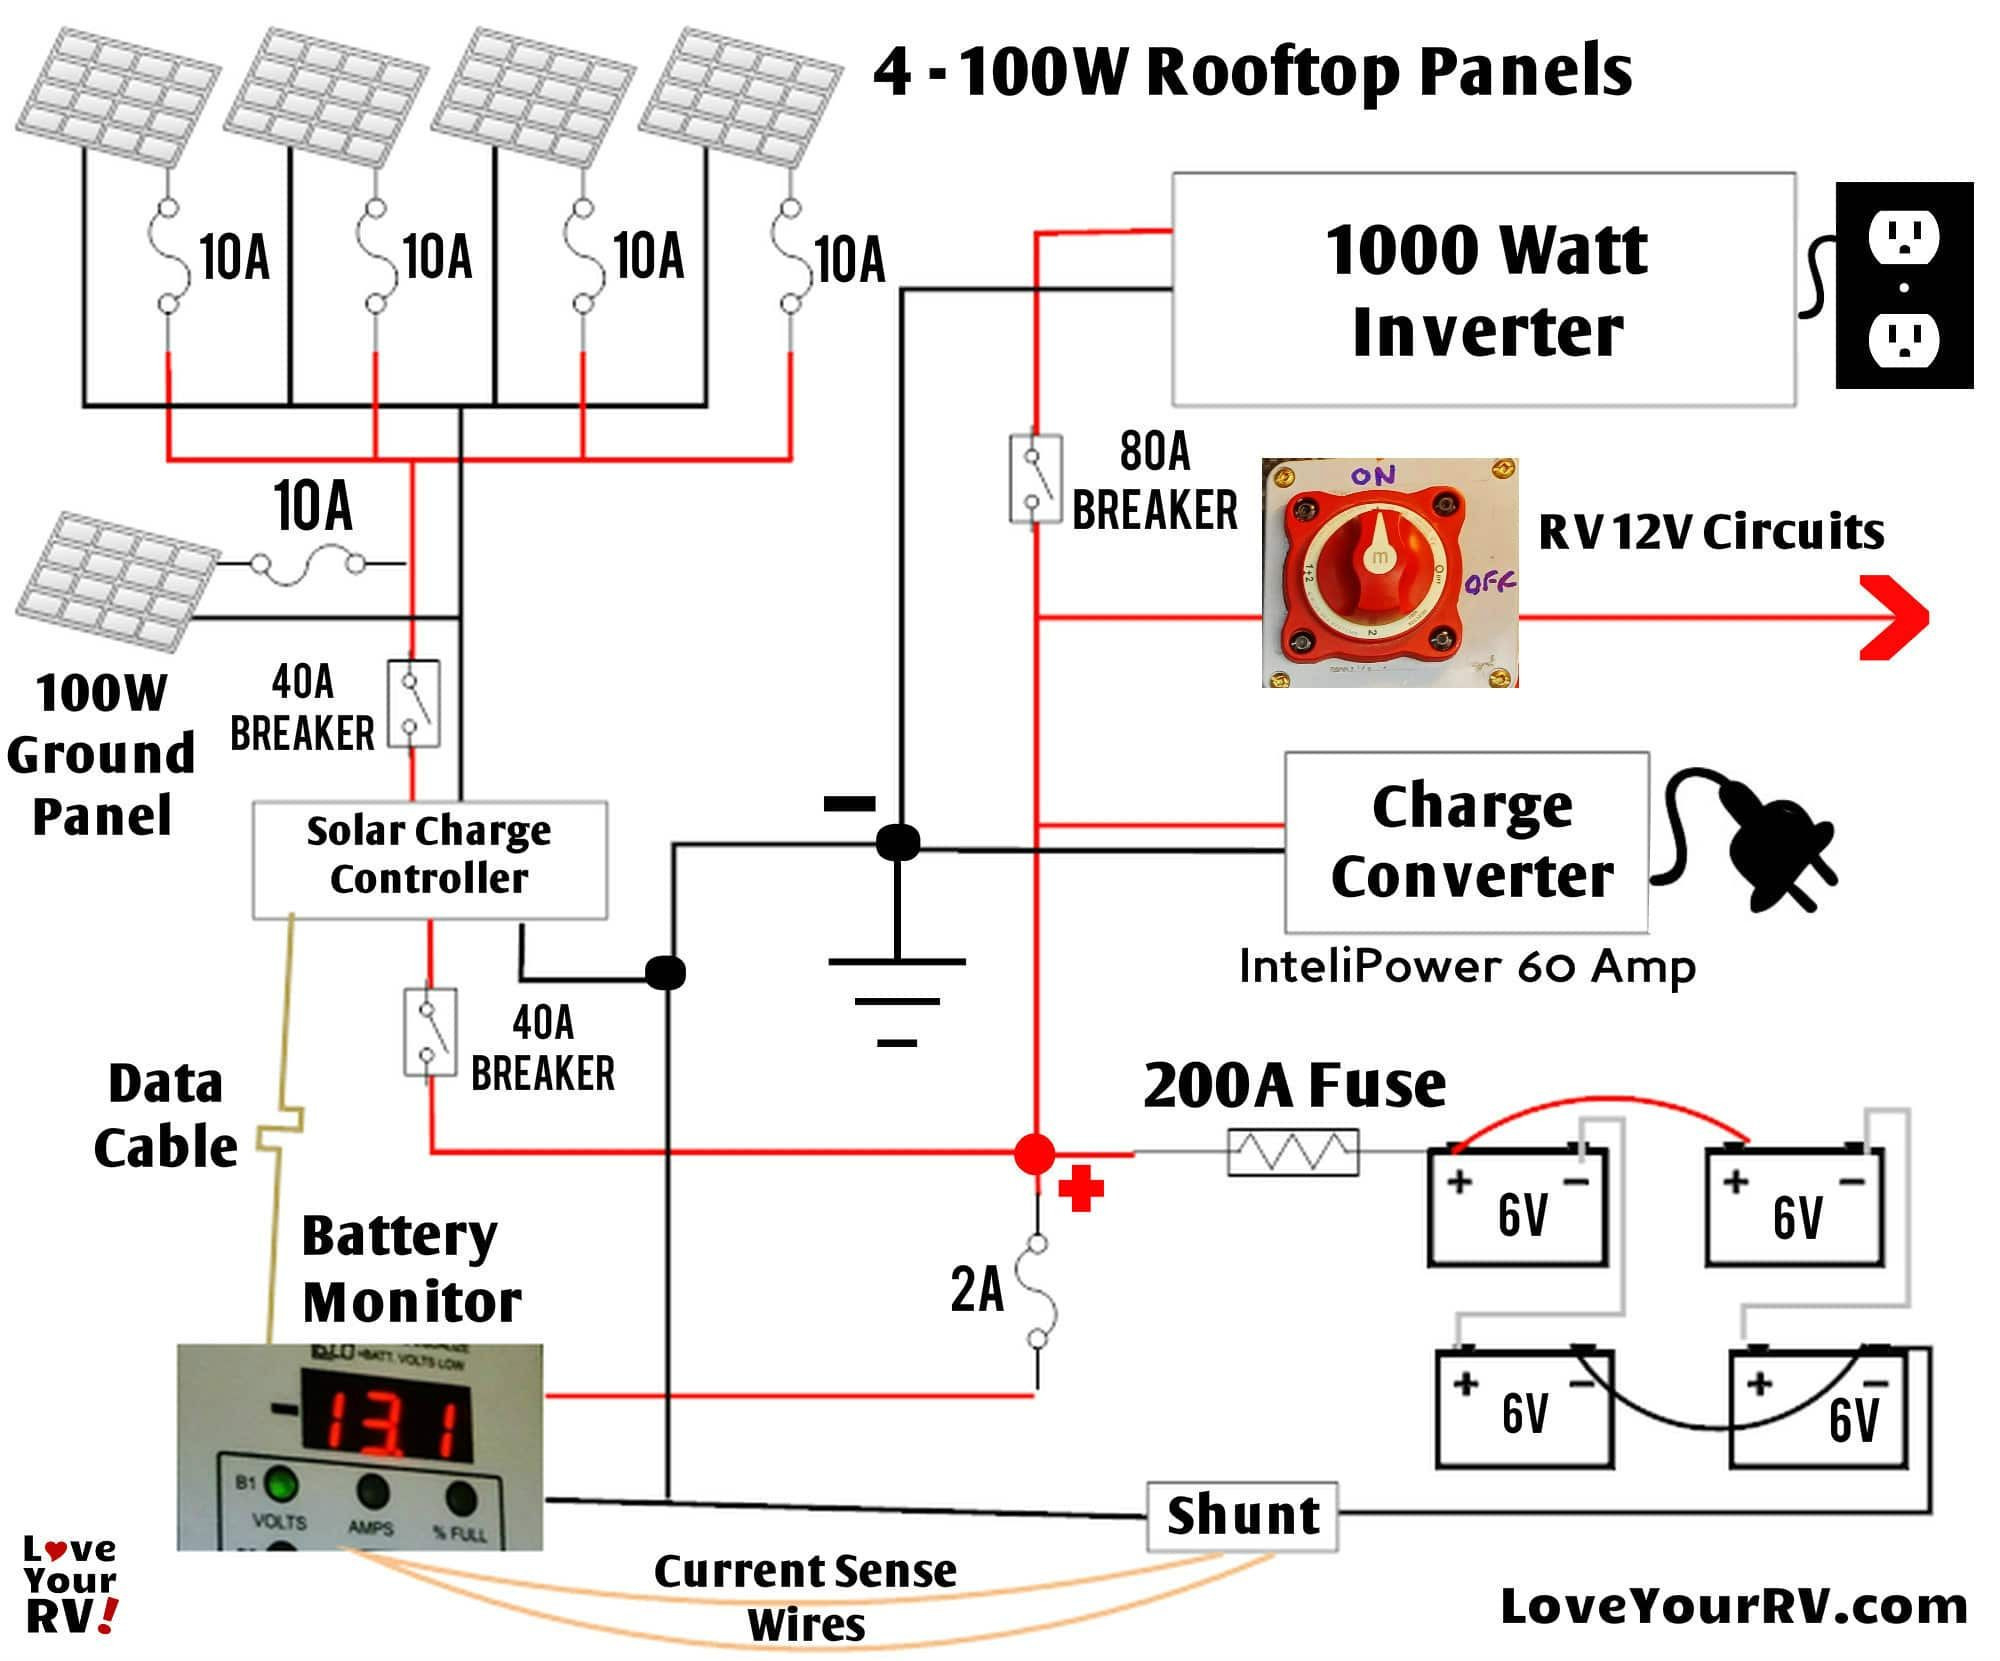 solar system wiring diagram Download-Wiring Diagram solar Panel System New Detailed Look at Our Diy Rv Boondocking Power System 7-n